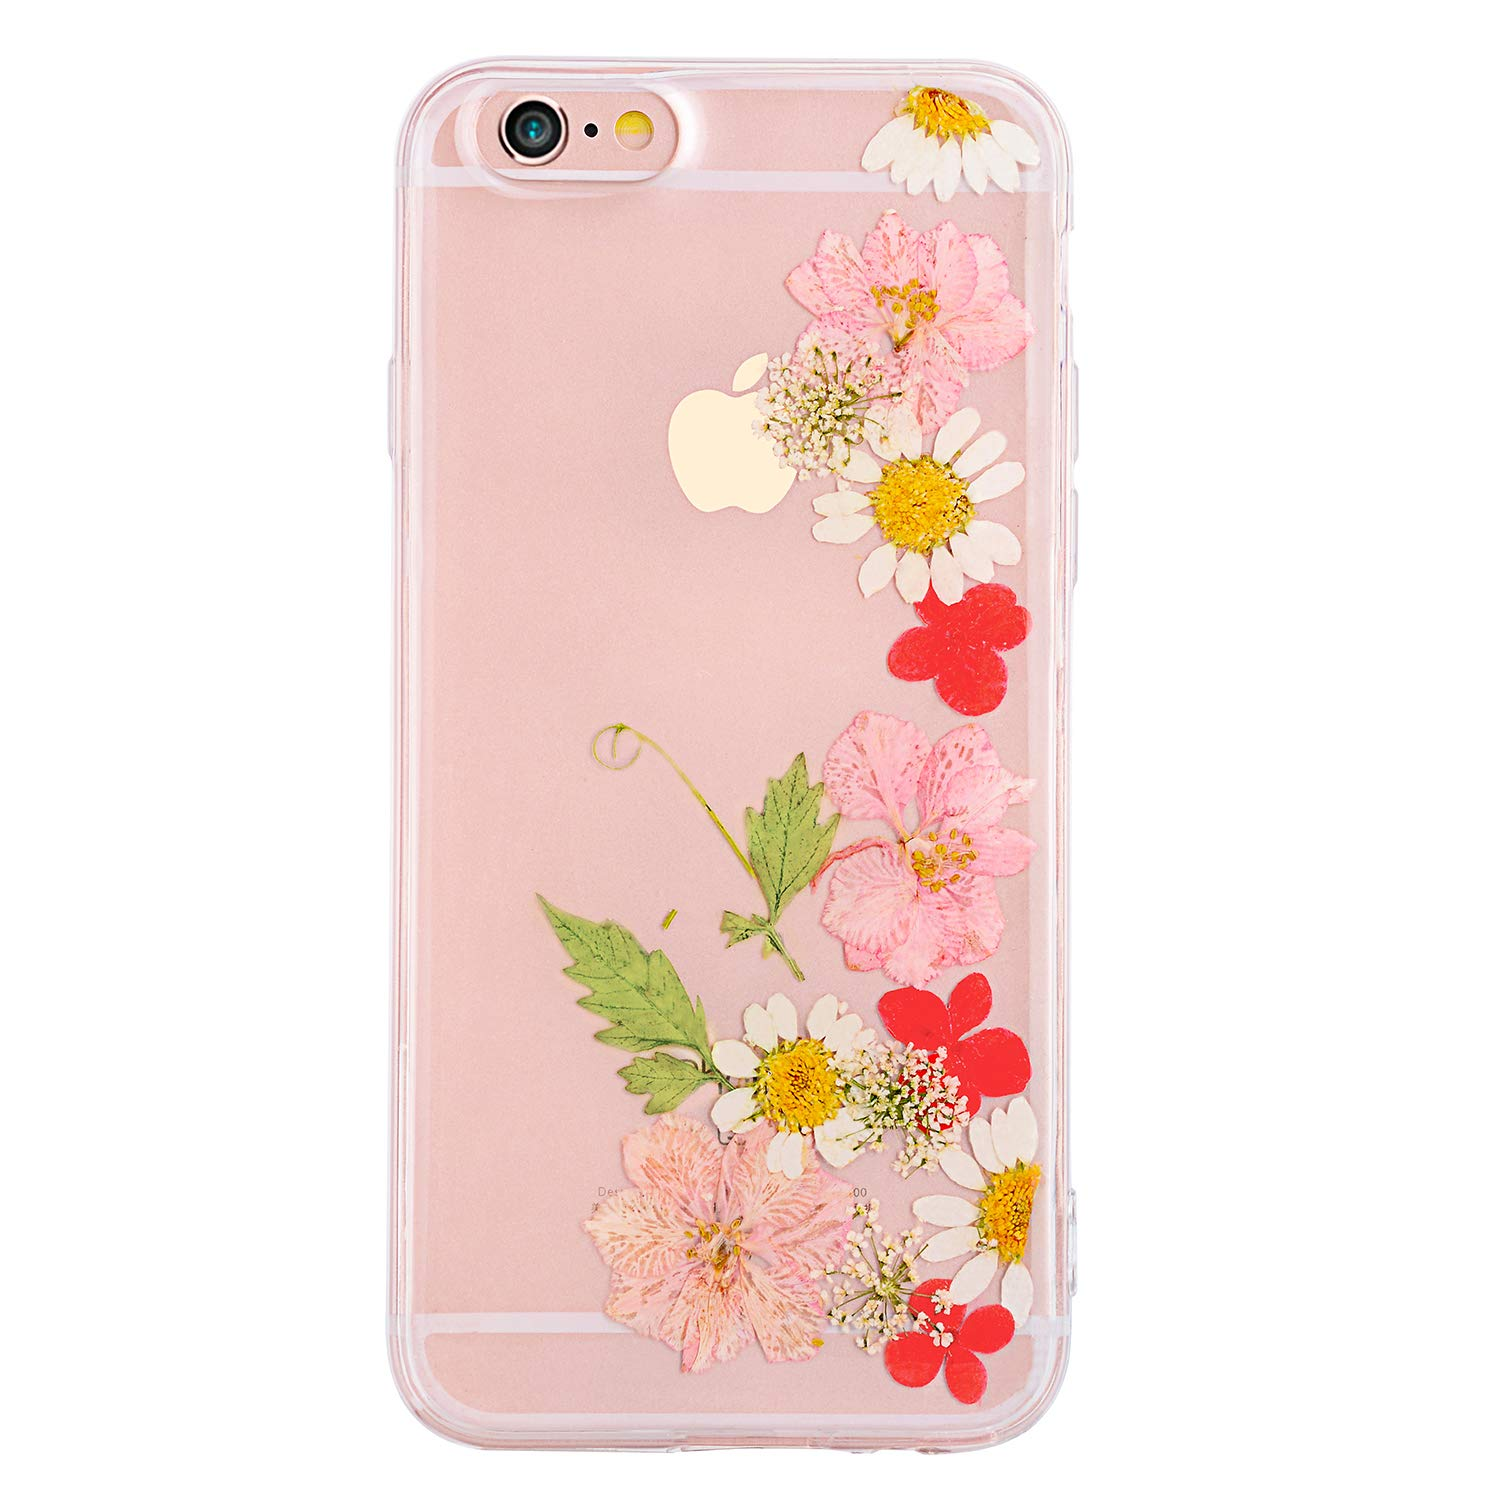 Pretty flower case for iphone 6 tipfly iphone 6s daisy floral real pressed dry flowers cover slim cute clear flexible rubber shell protective for iphone